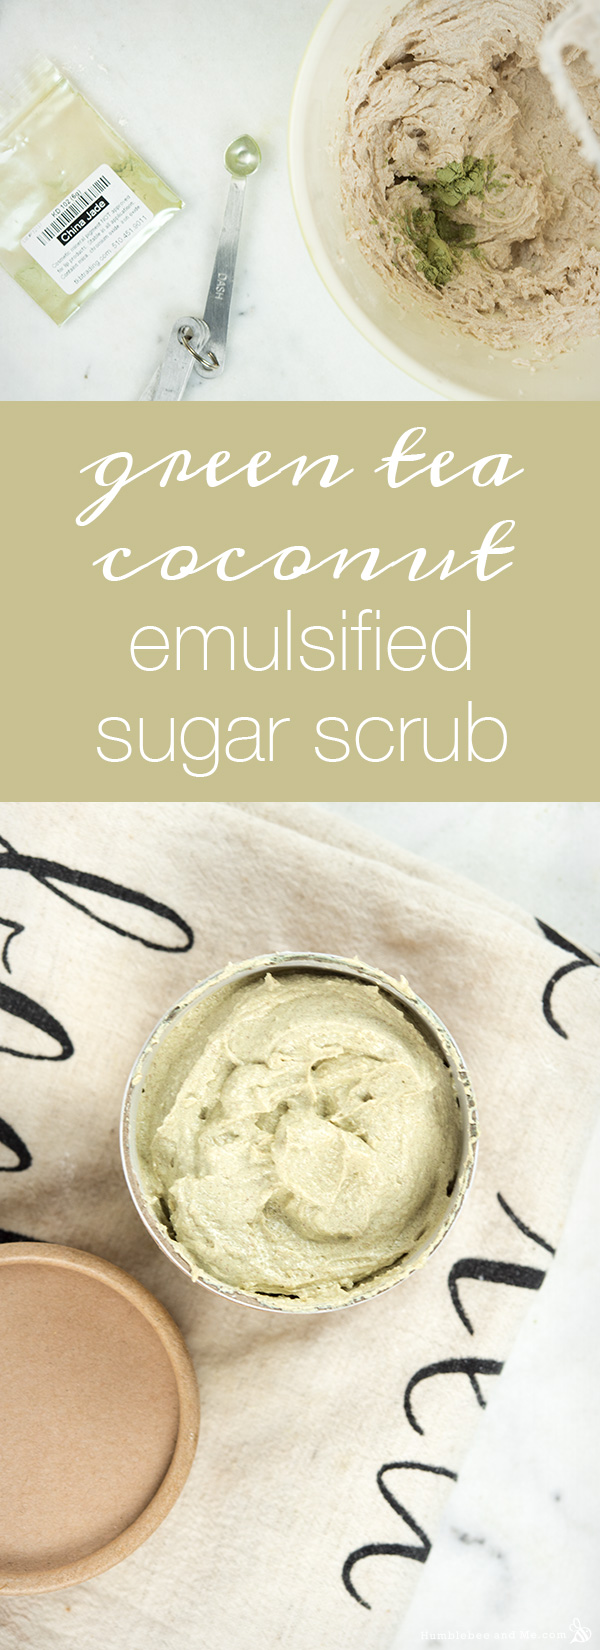 How to Make Green Tea Coconut Emulsified Sugar Scrub